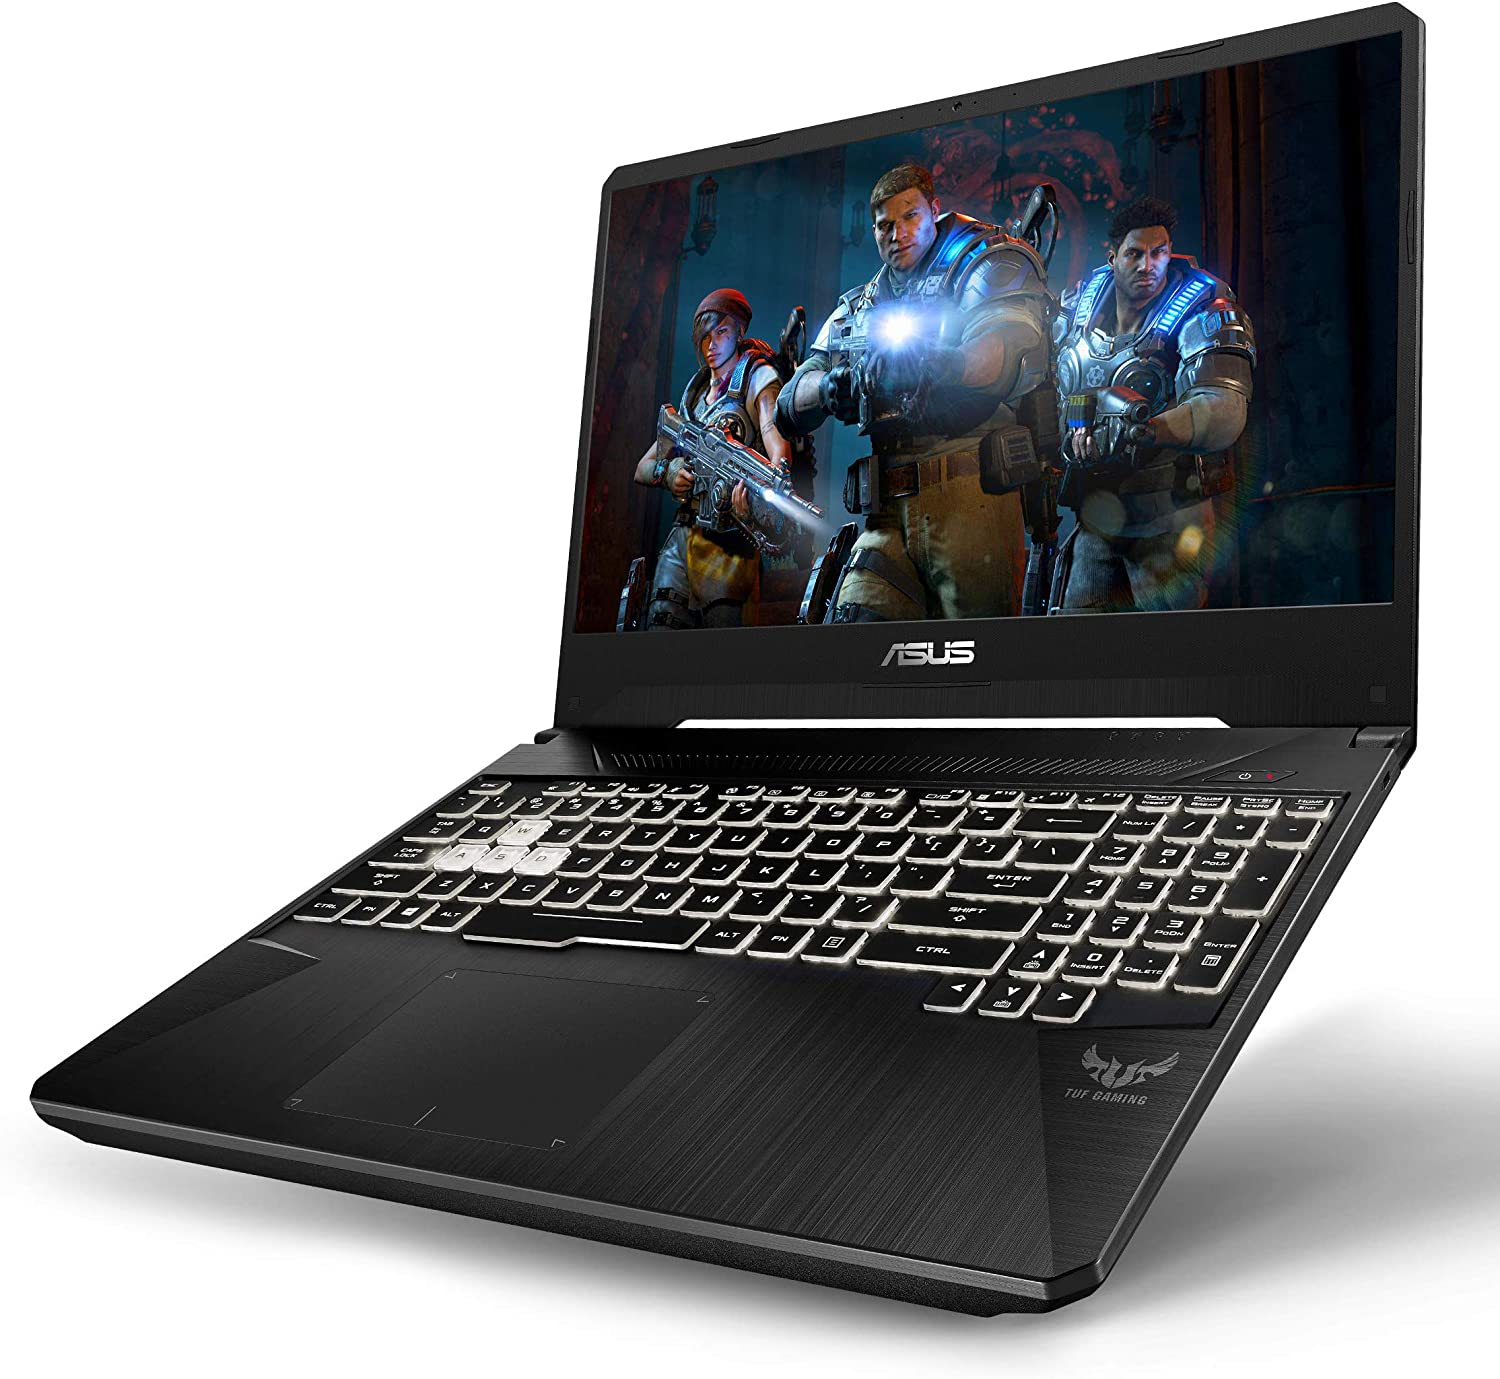 10 Best Laptops For Sims 4 in 2021 [Fast & Smooth Performance]